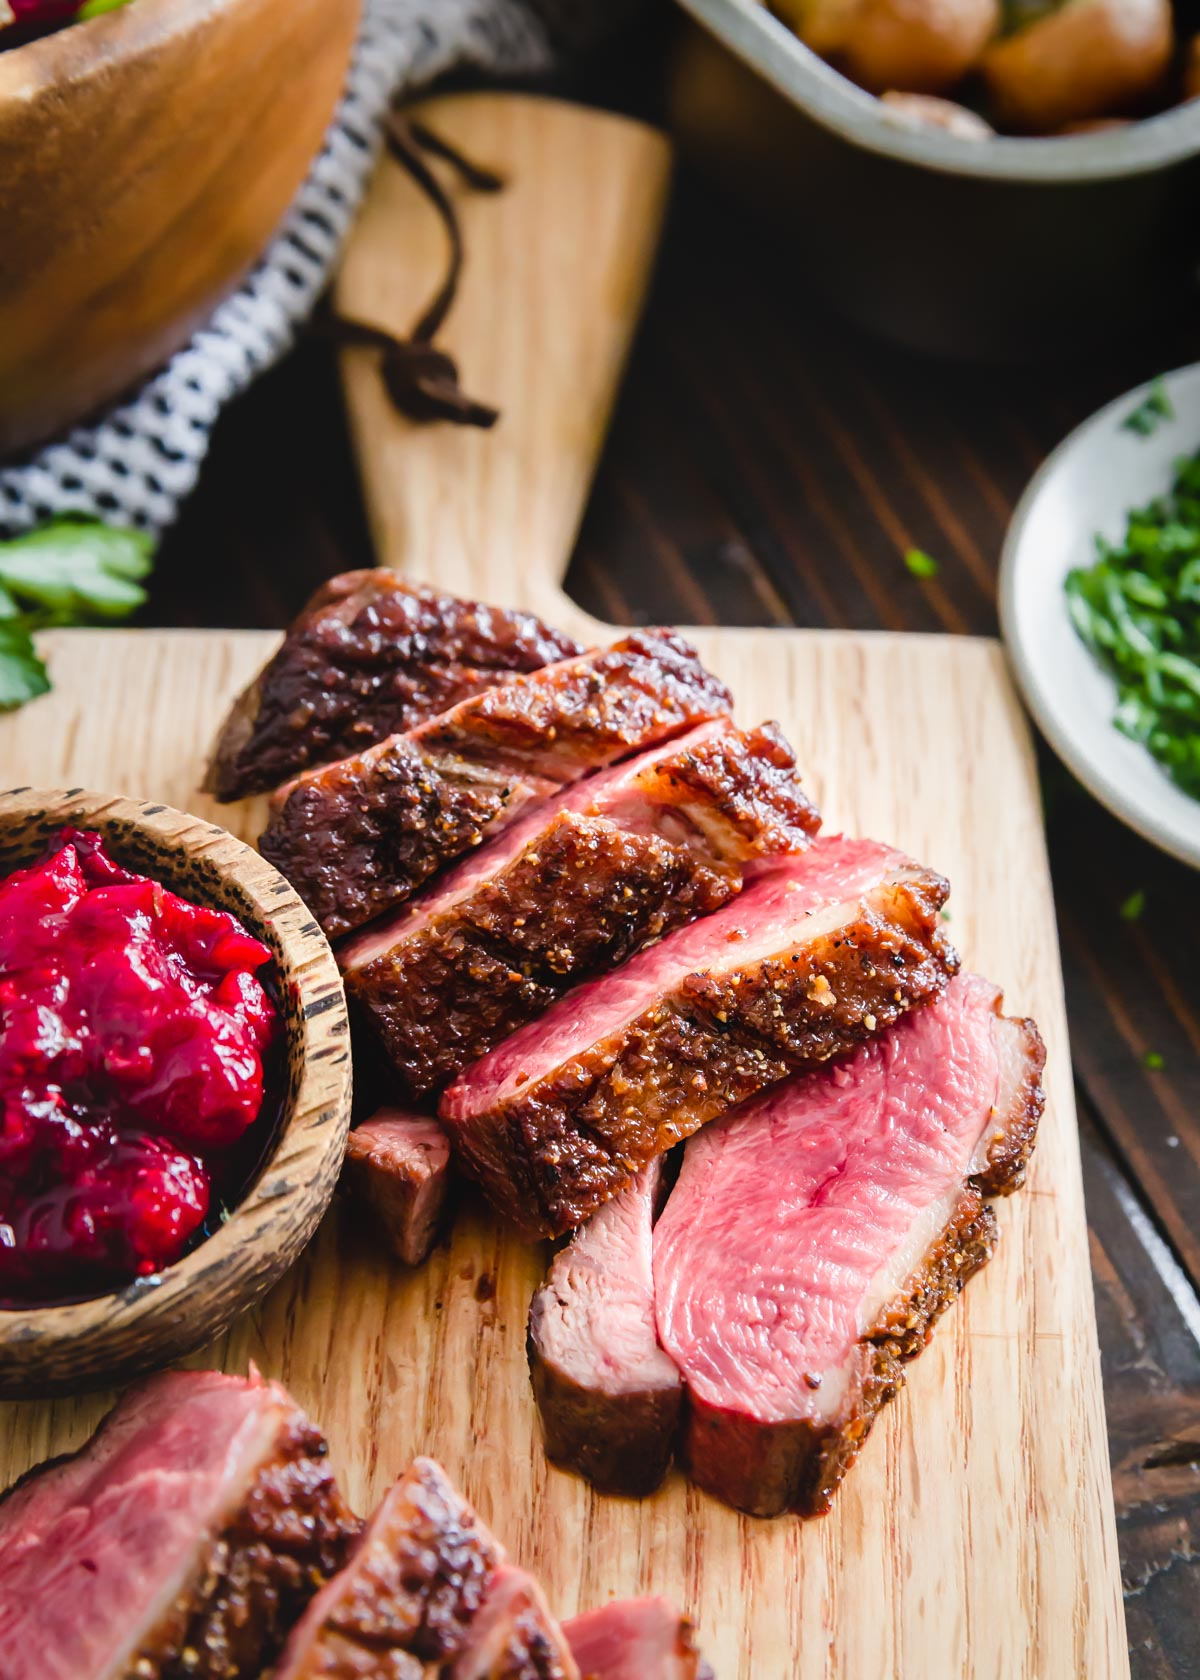 This duck breast recipe comes together so easily with just a few simple ingredients using a quick pan sear method on the stove top. Learn how to cook duck breast with this impressively elegant yet effortless recipe. Perfect for a special dinner at home or to serve a crowd!